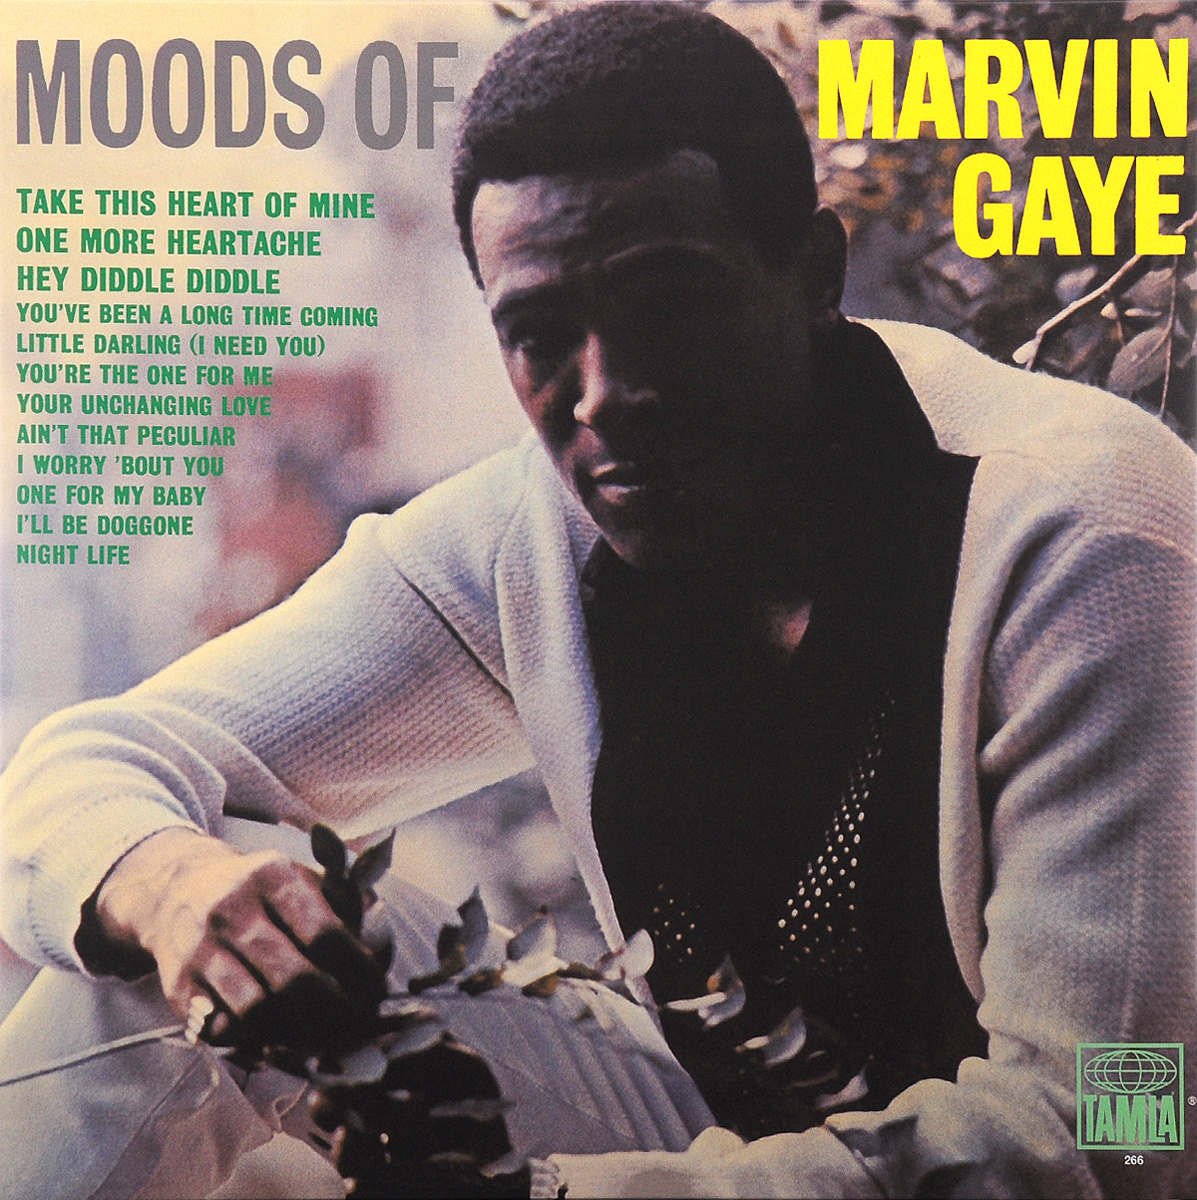 Марвин Гэй Marvin Gaye. Moods Of Marvin Gaye (LP) марвин гэй marvin gaye volume jne 1961 1965 7 lp